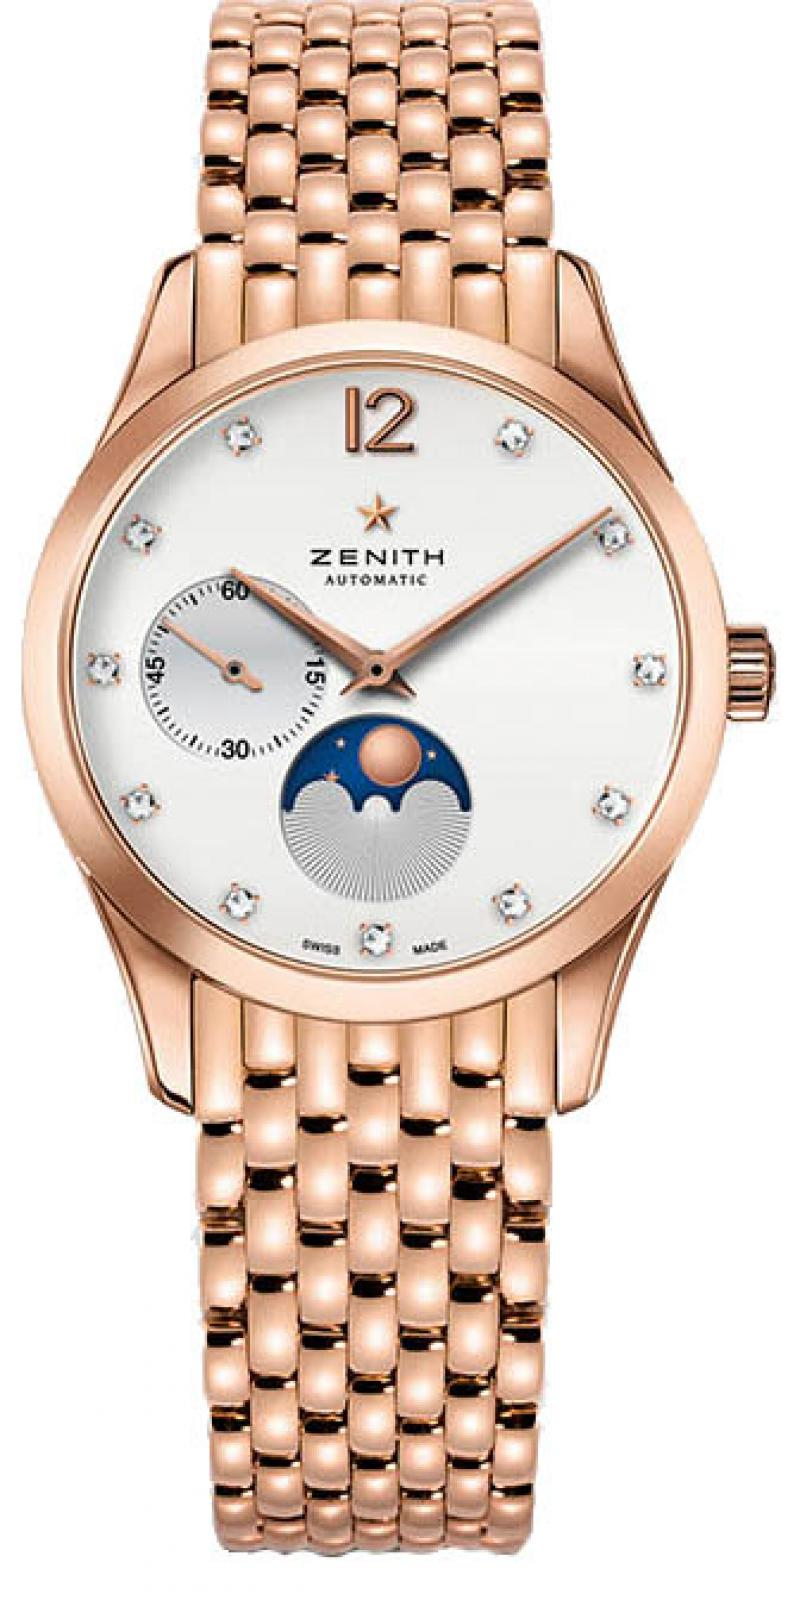 18.2311.692/03.M2310 Zenith ULTRA THIN LADY MOONPHASE BOUTIQUE EDITION Ladies Collection